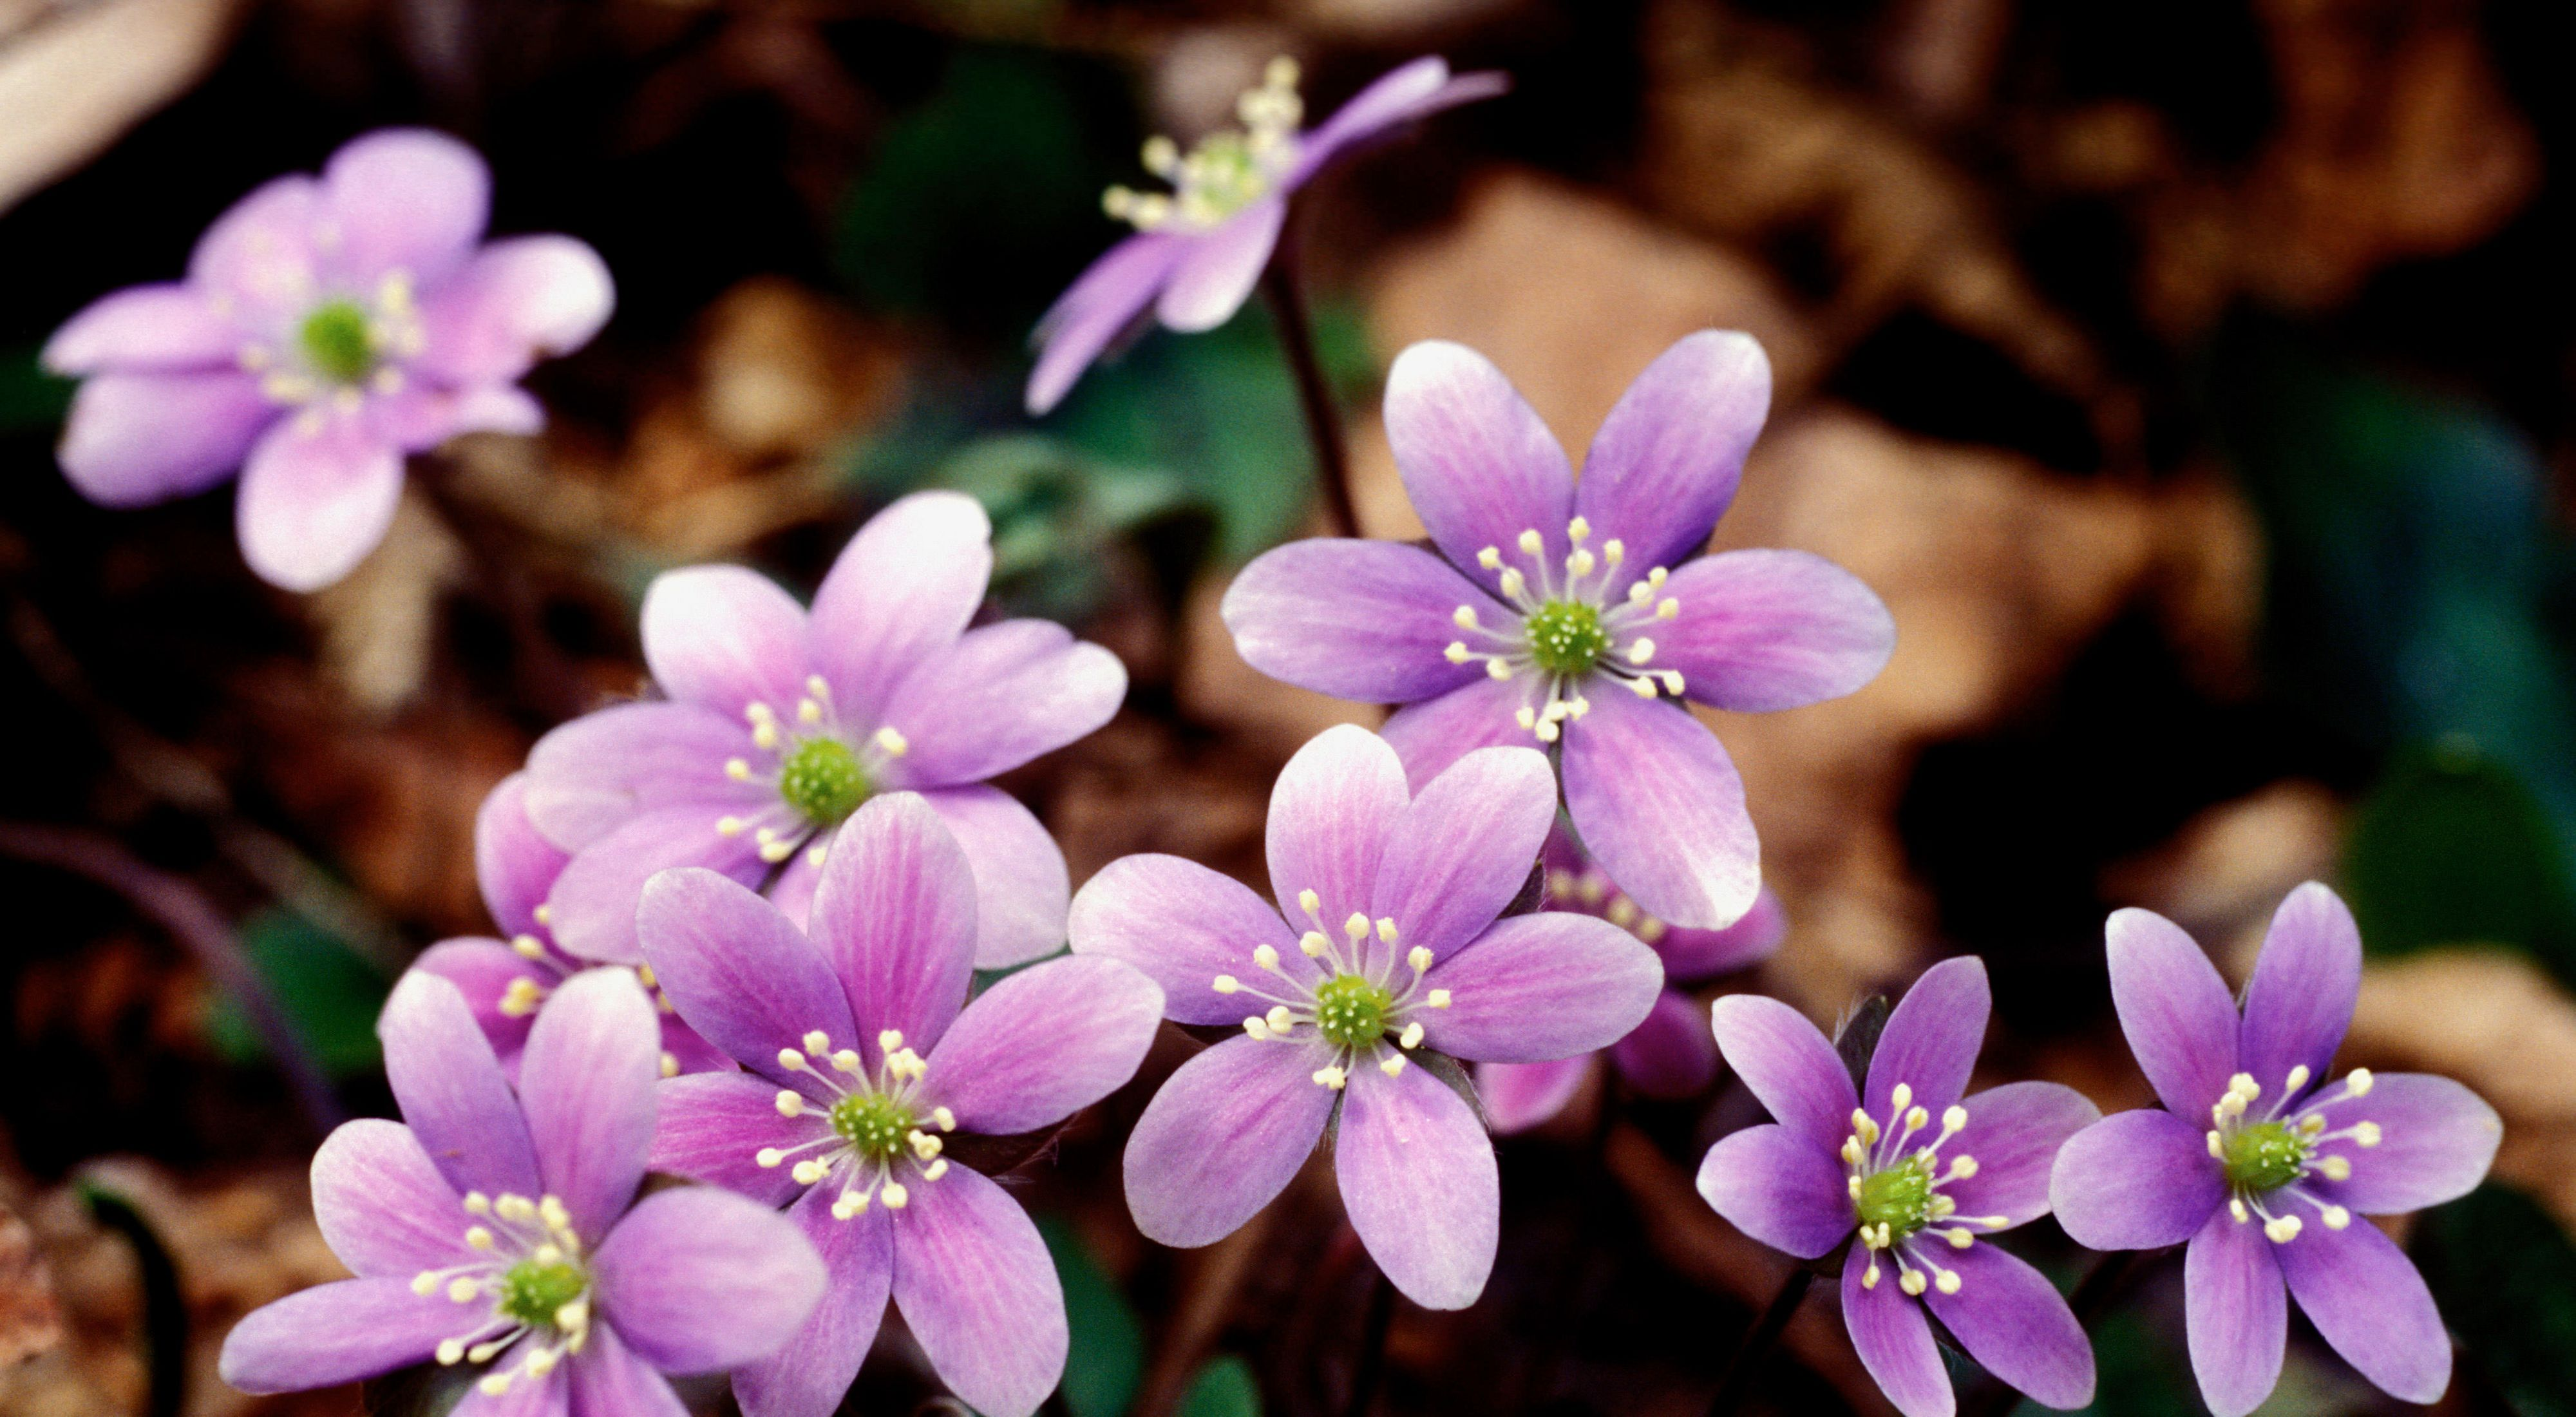 Closeup of a bunch of round lobed light purple hepatica wildflowers.